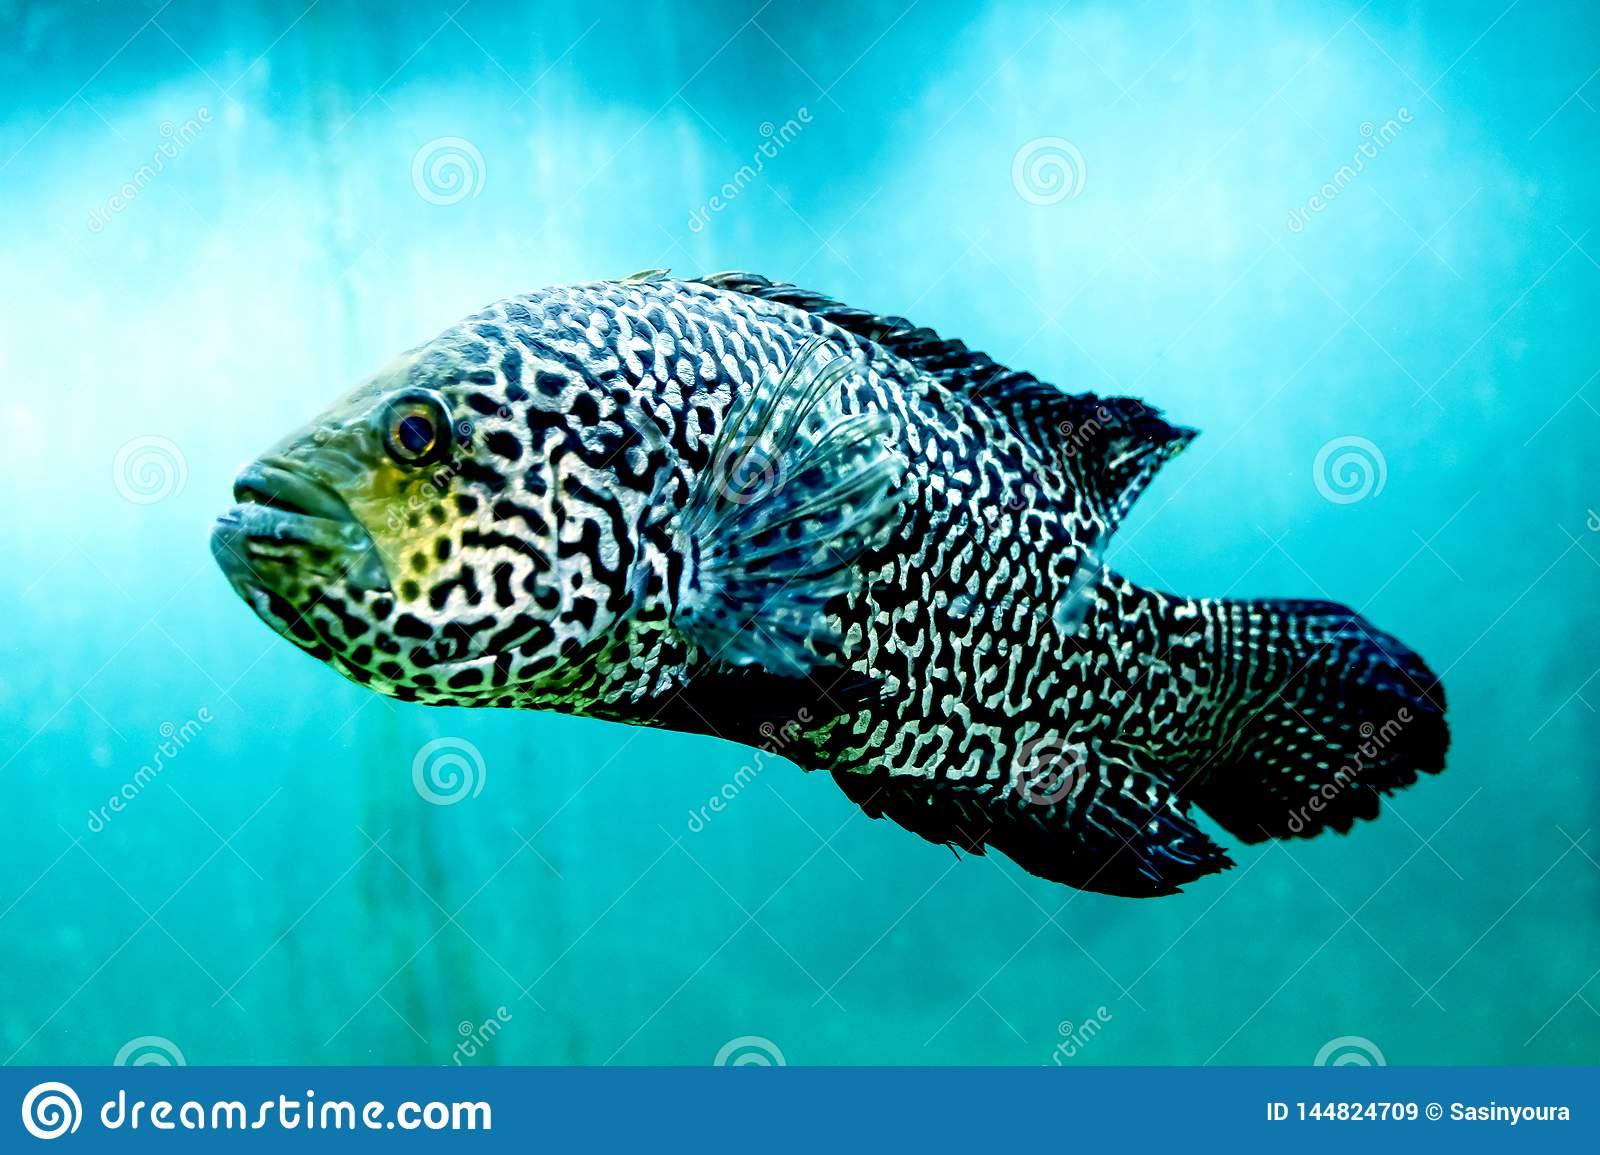 Big fish in clear and clear blue water, close up the beauty of the underwater world